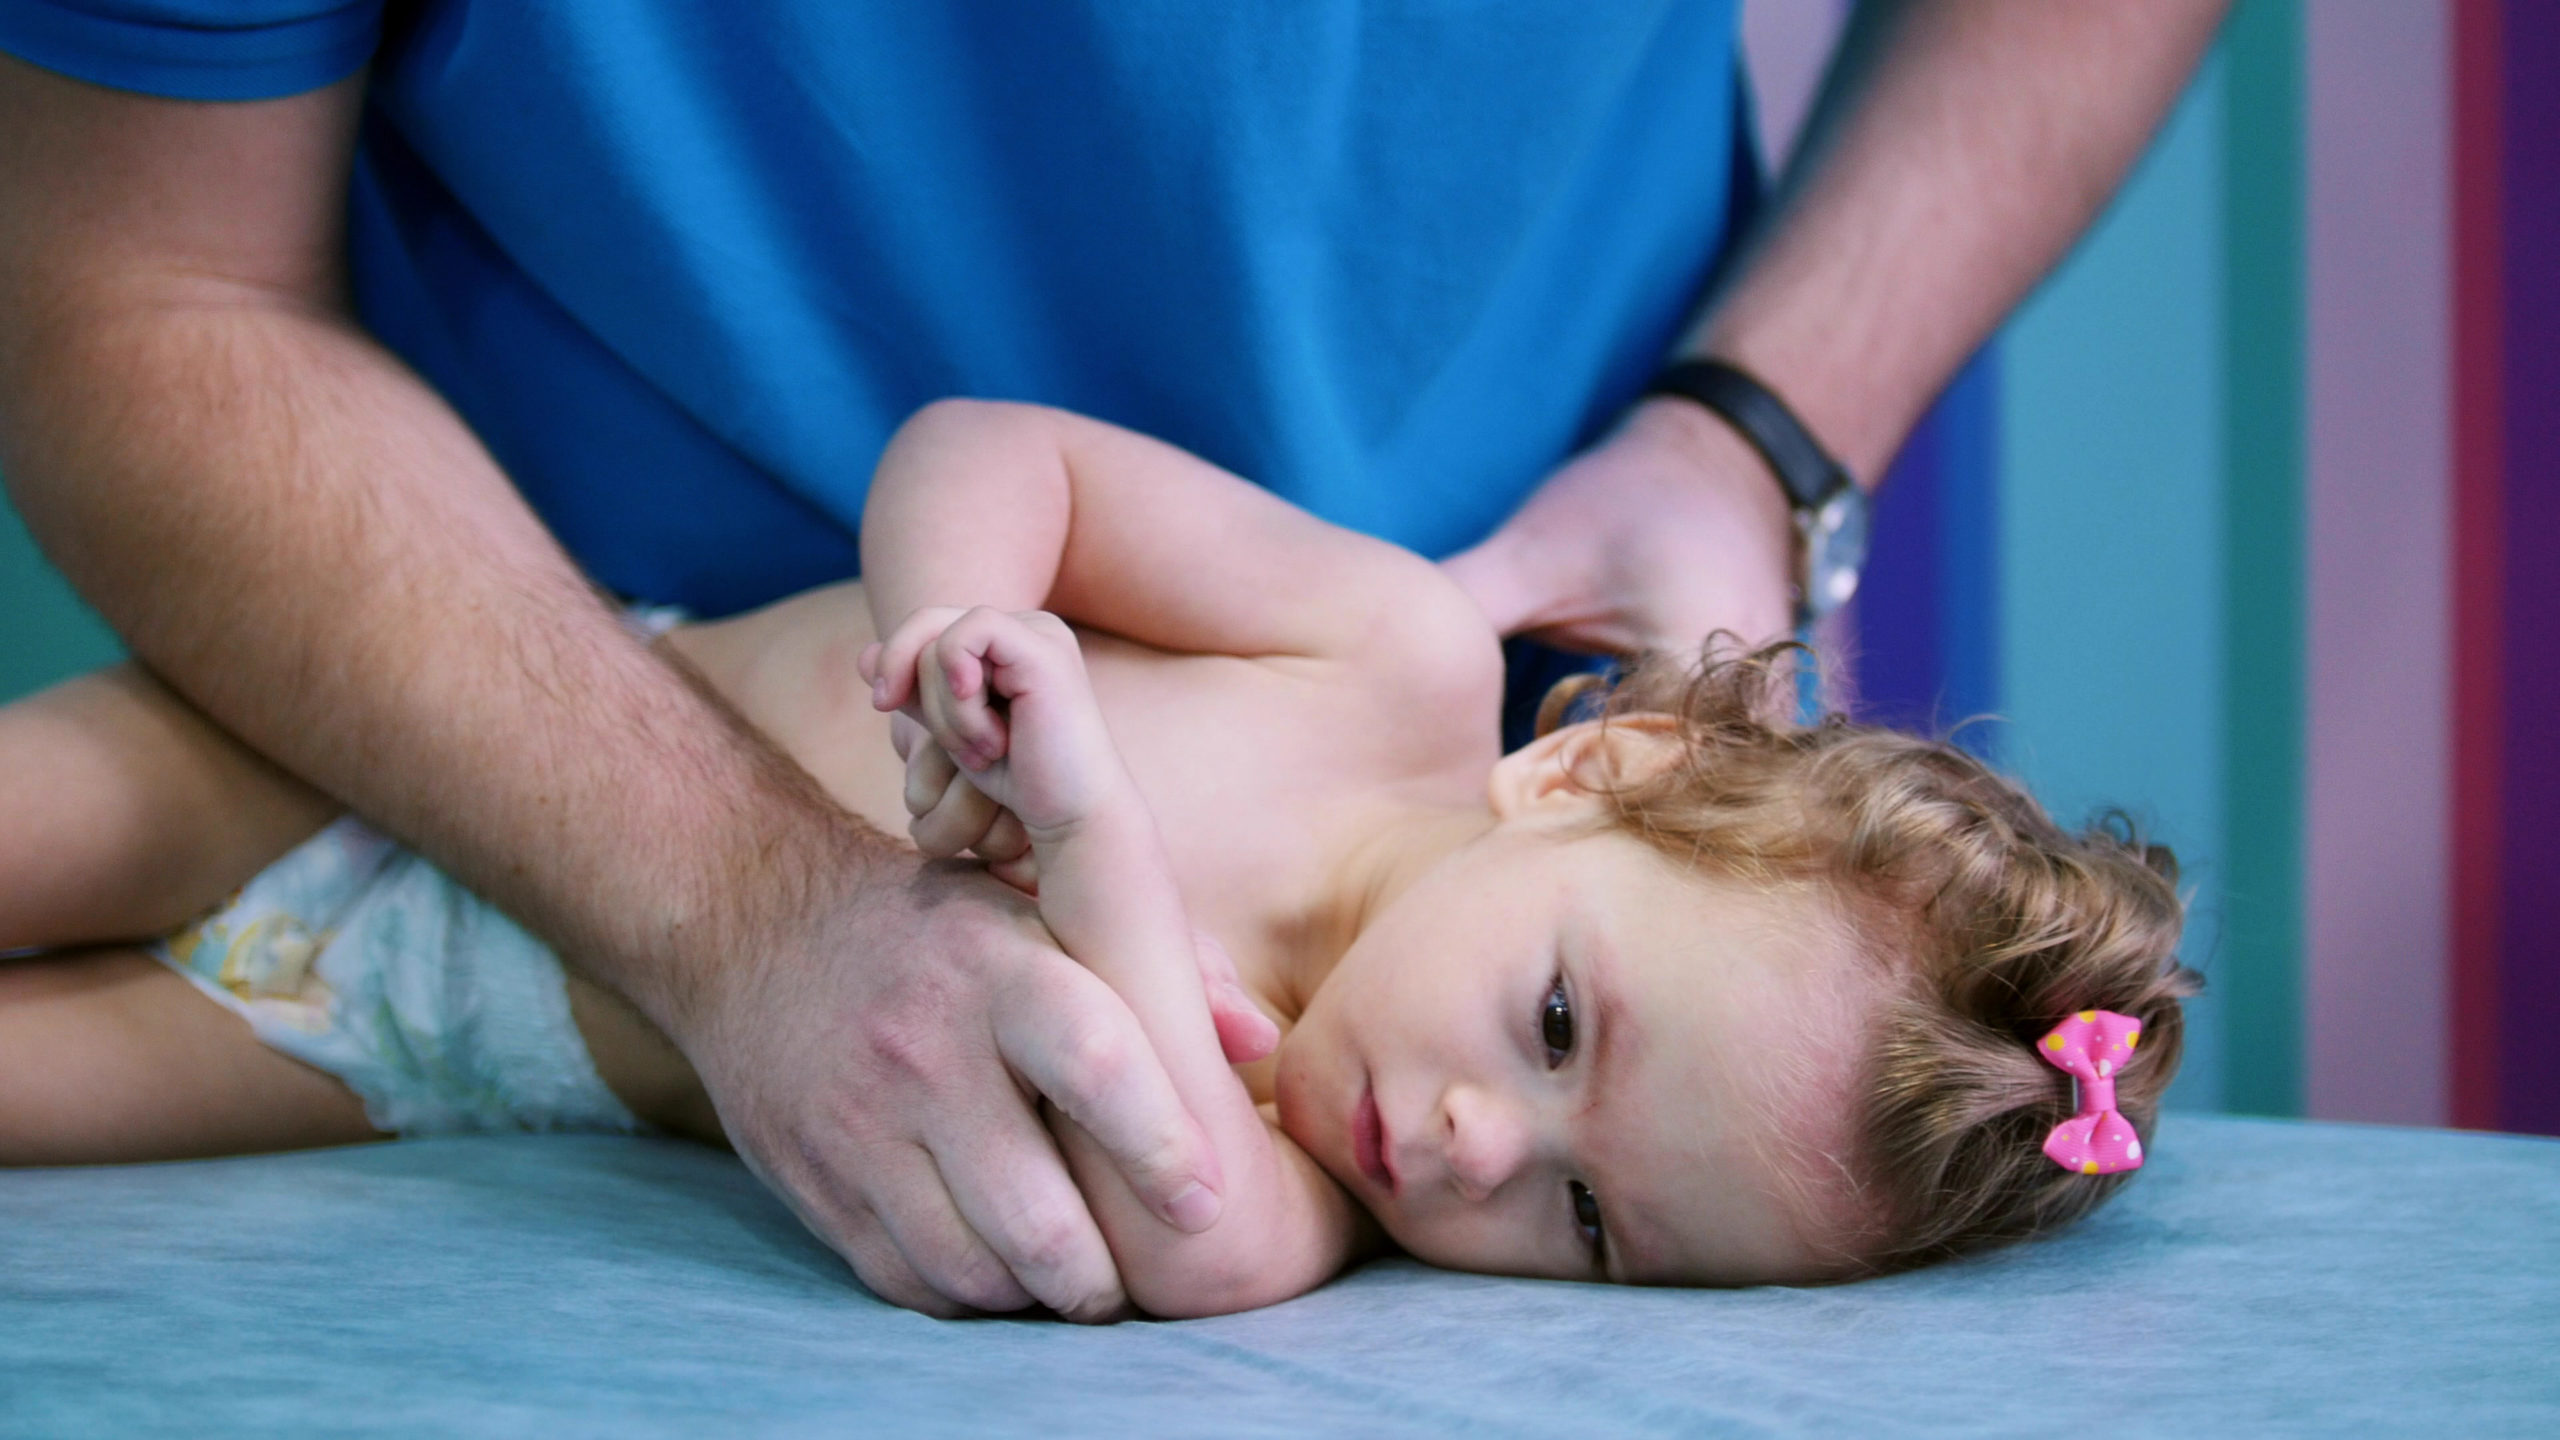 An,Occupation,With,Baby,With,Cerebral,Palsy.,Physiotherapy